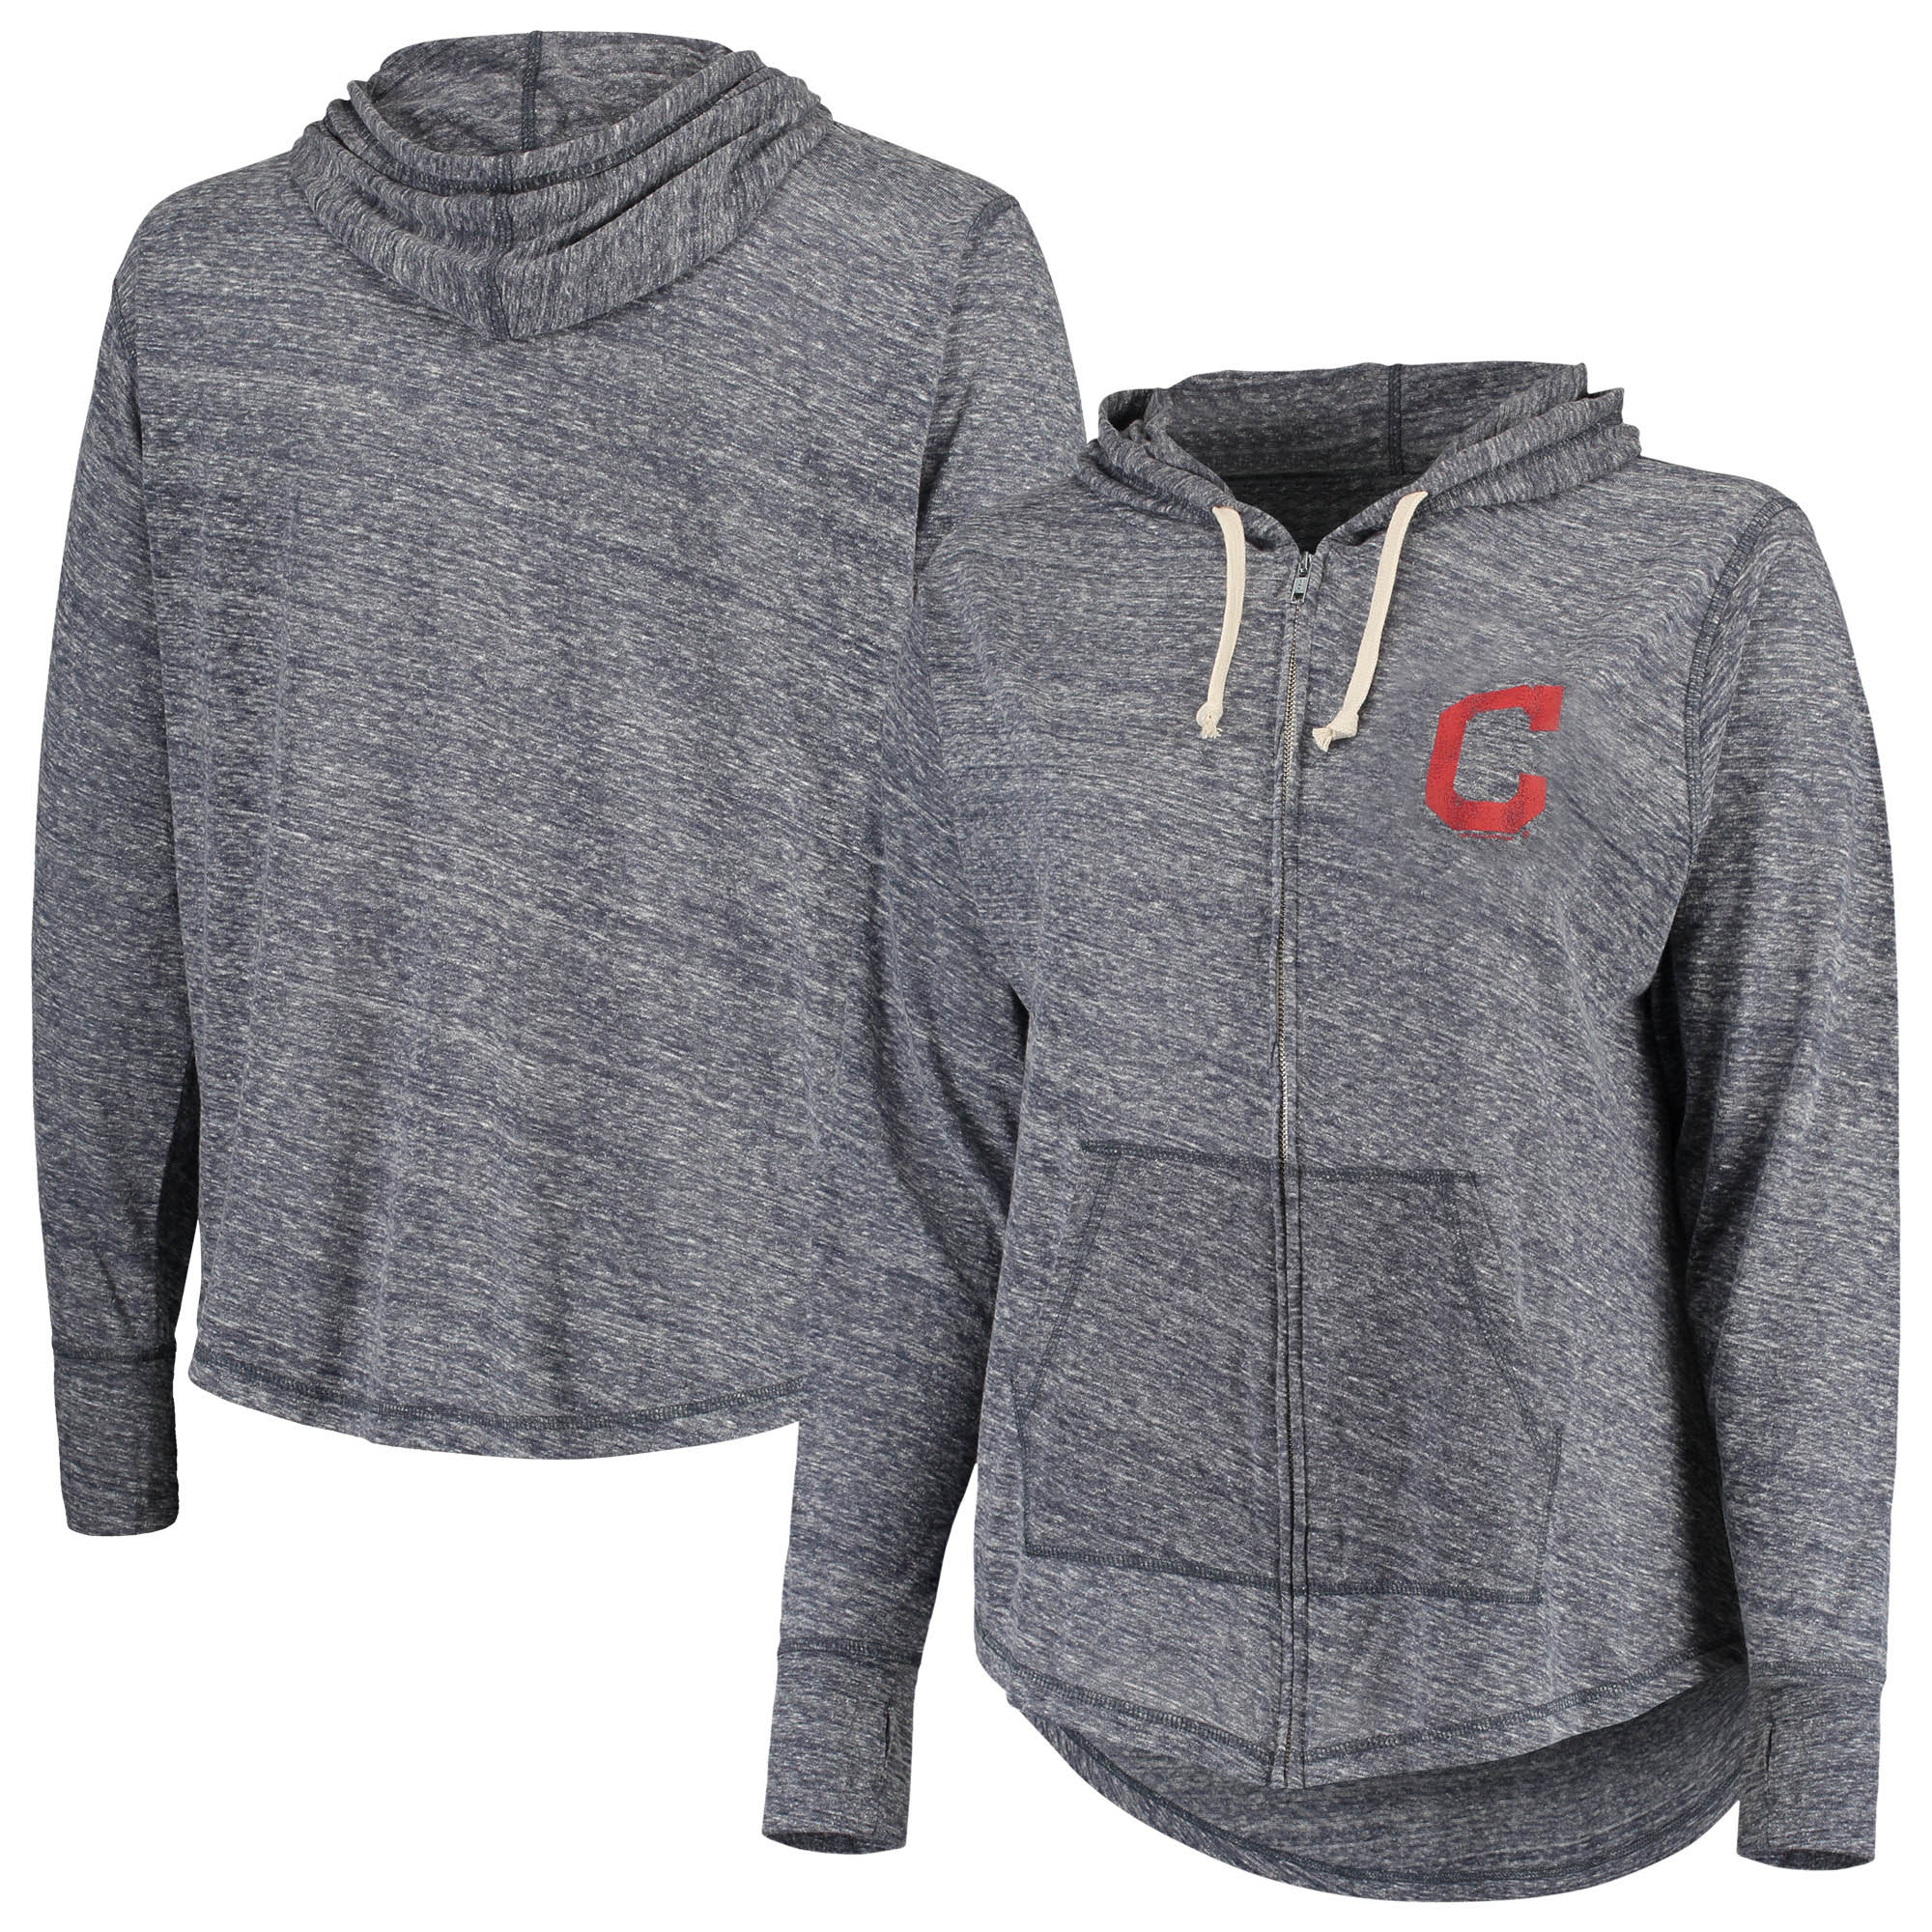 Cleveland Indians Soft as a Grape Women's Plus Size Full-Zip Hoodie - Navy